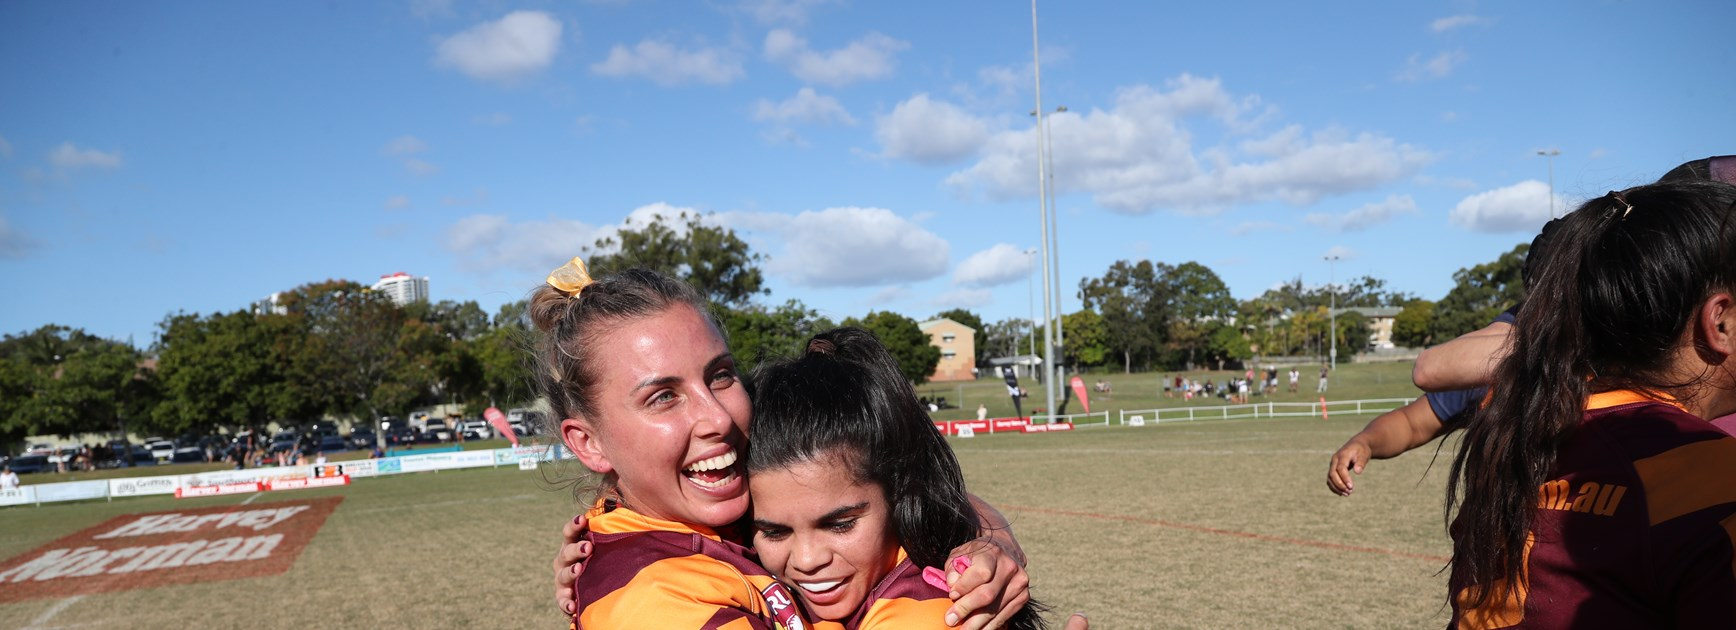 NSW Country storm home to be crowned National Champions